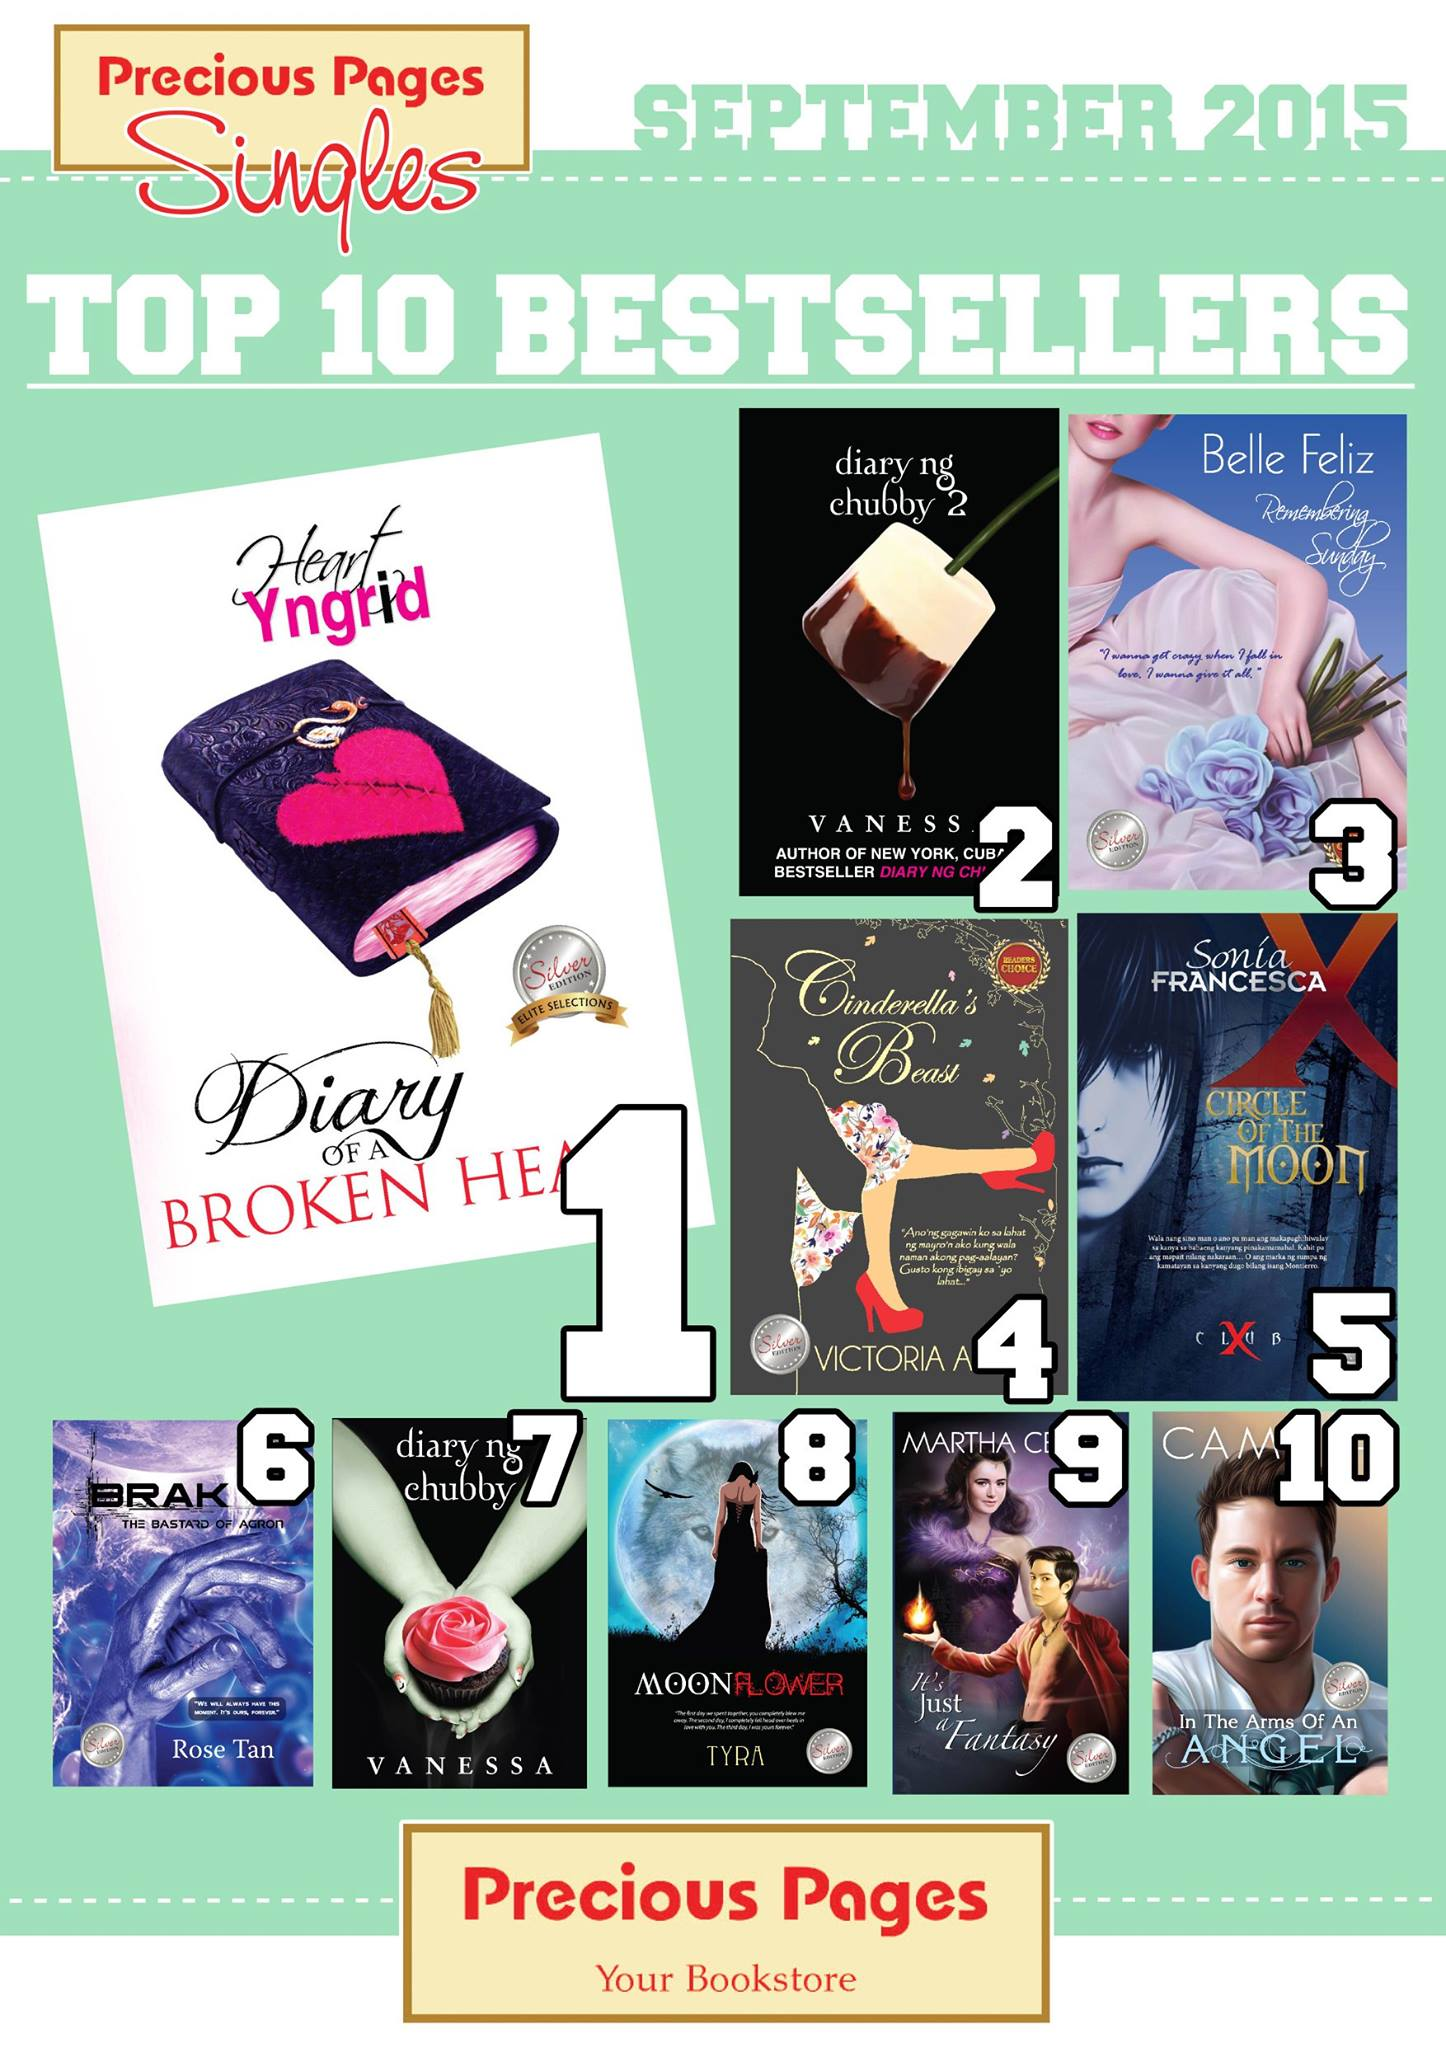 Diary Of A Broken Heart is No. 1!